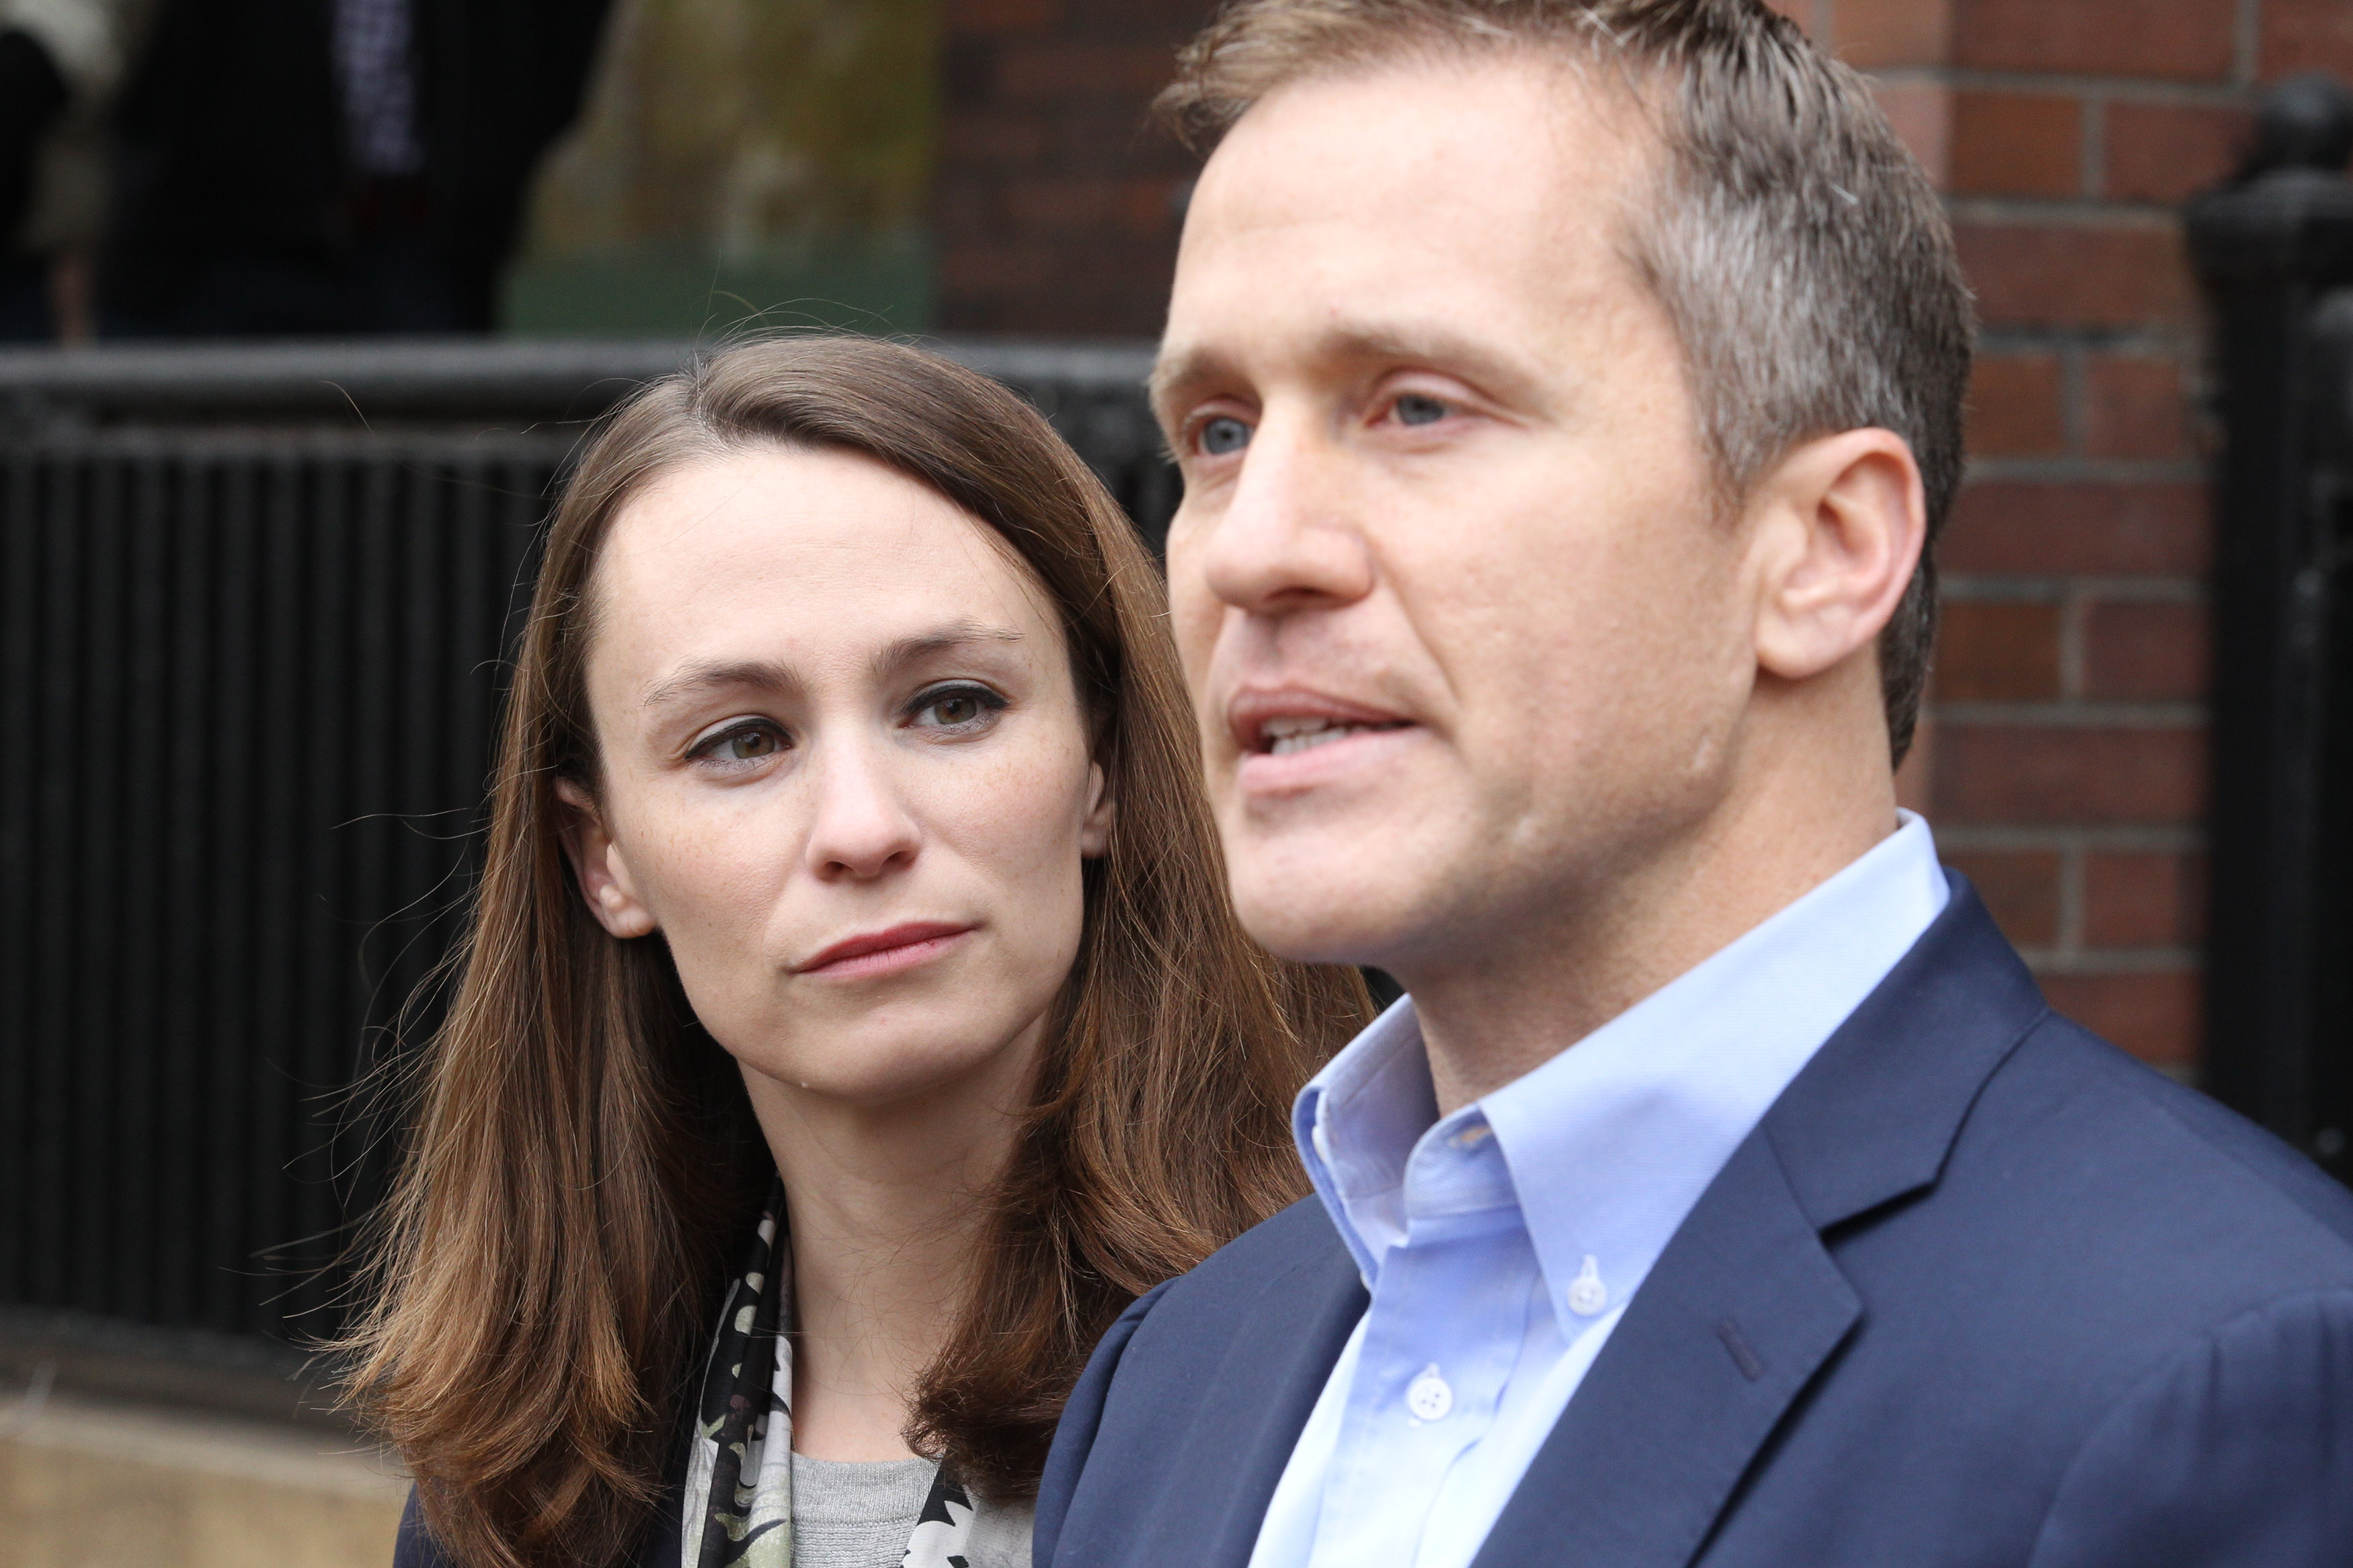 Governor Greitens and his wife